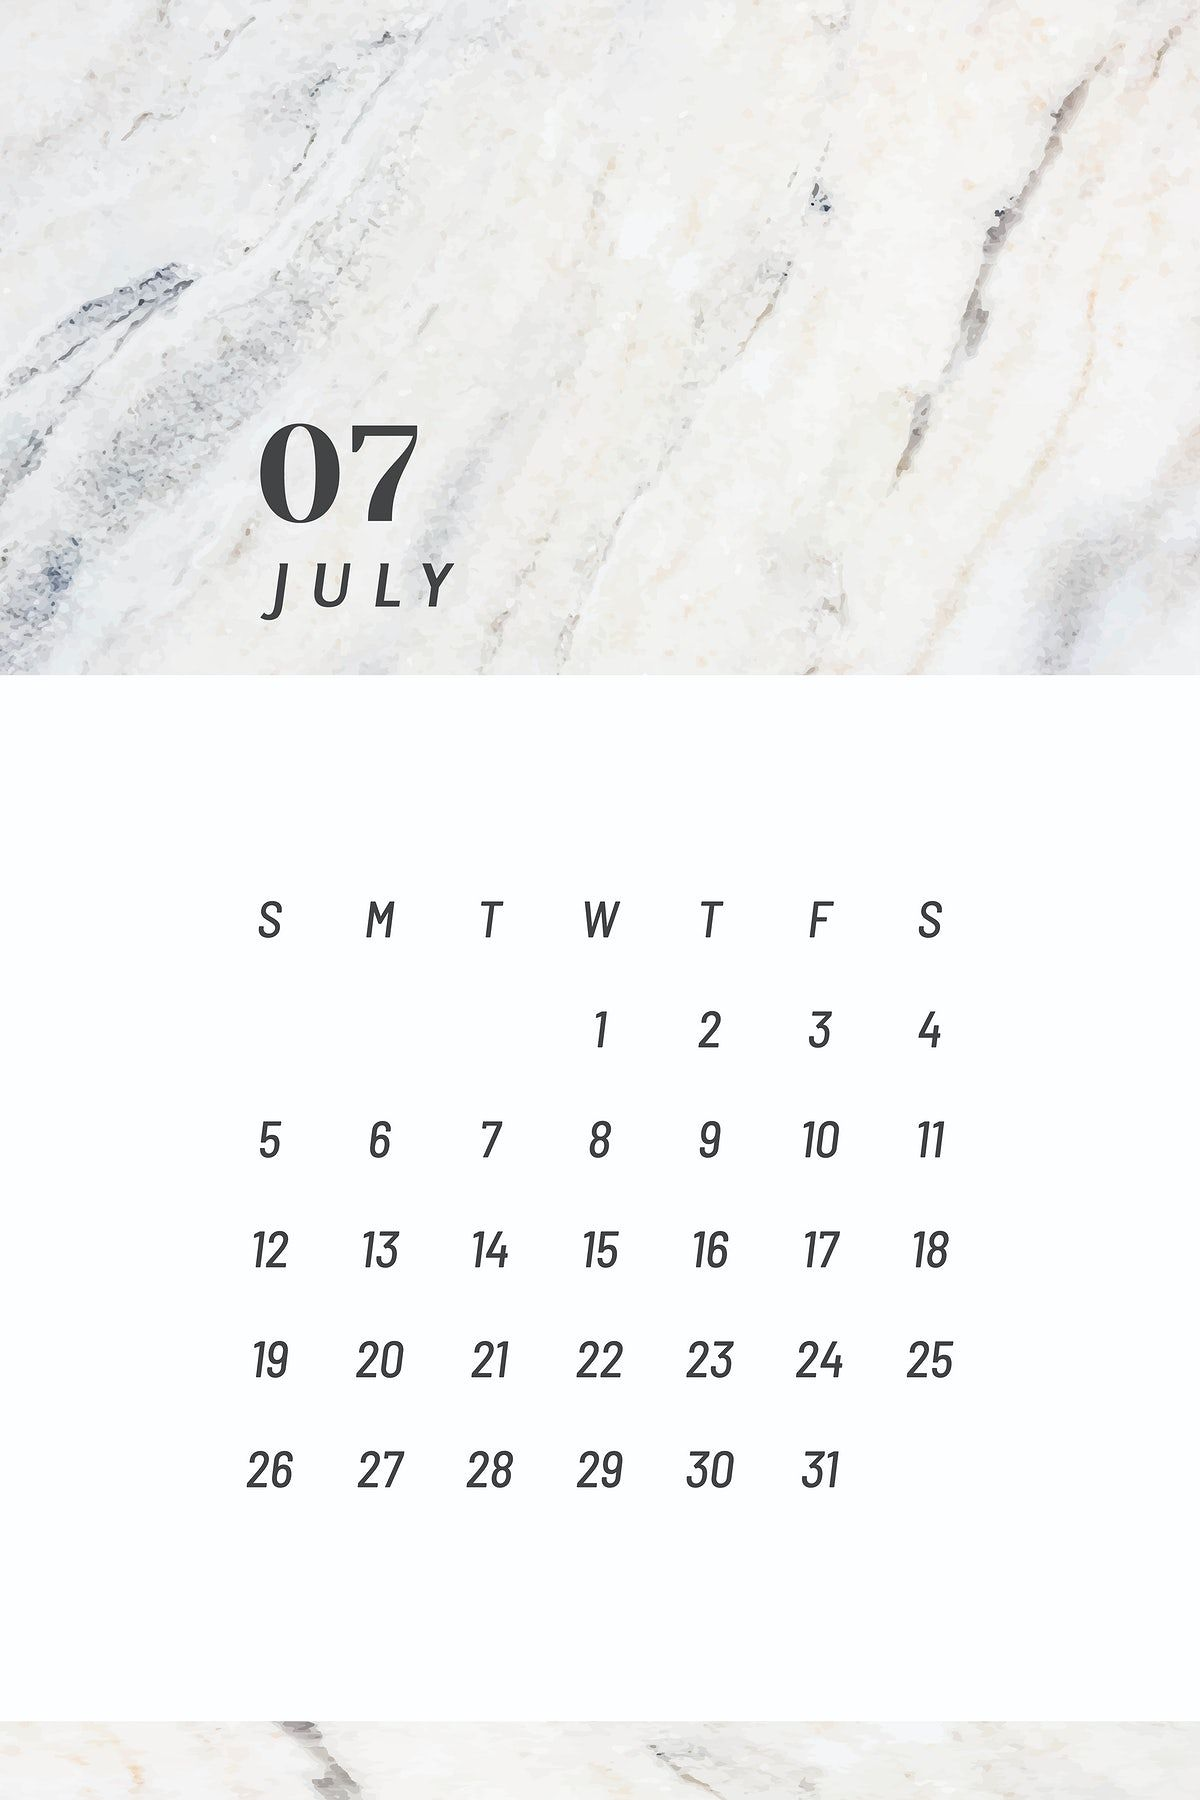 Download premium vector of Black and white July calendar 2020 vector by Nunny about calendar july calendar, calendar 2020, 07, 2020, and agenda 1232427